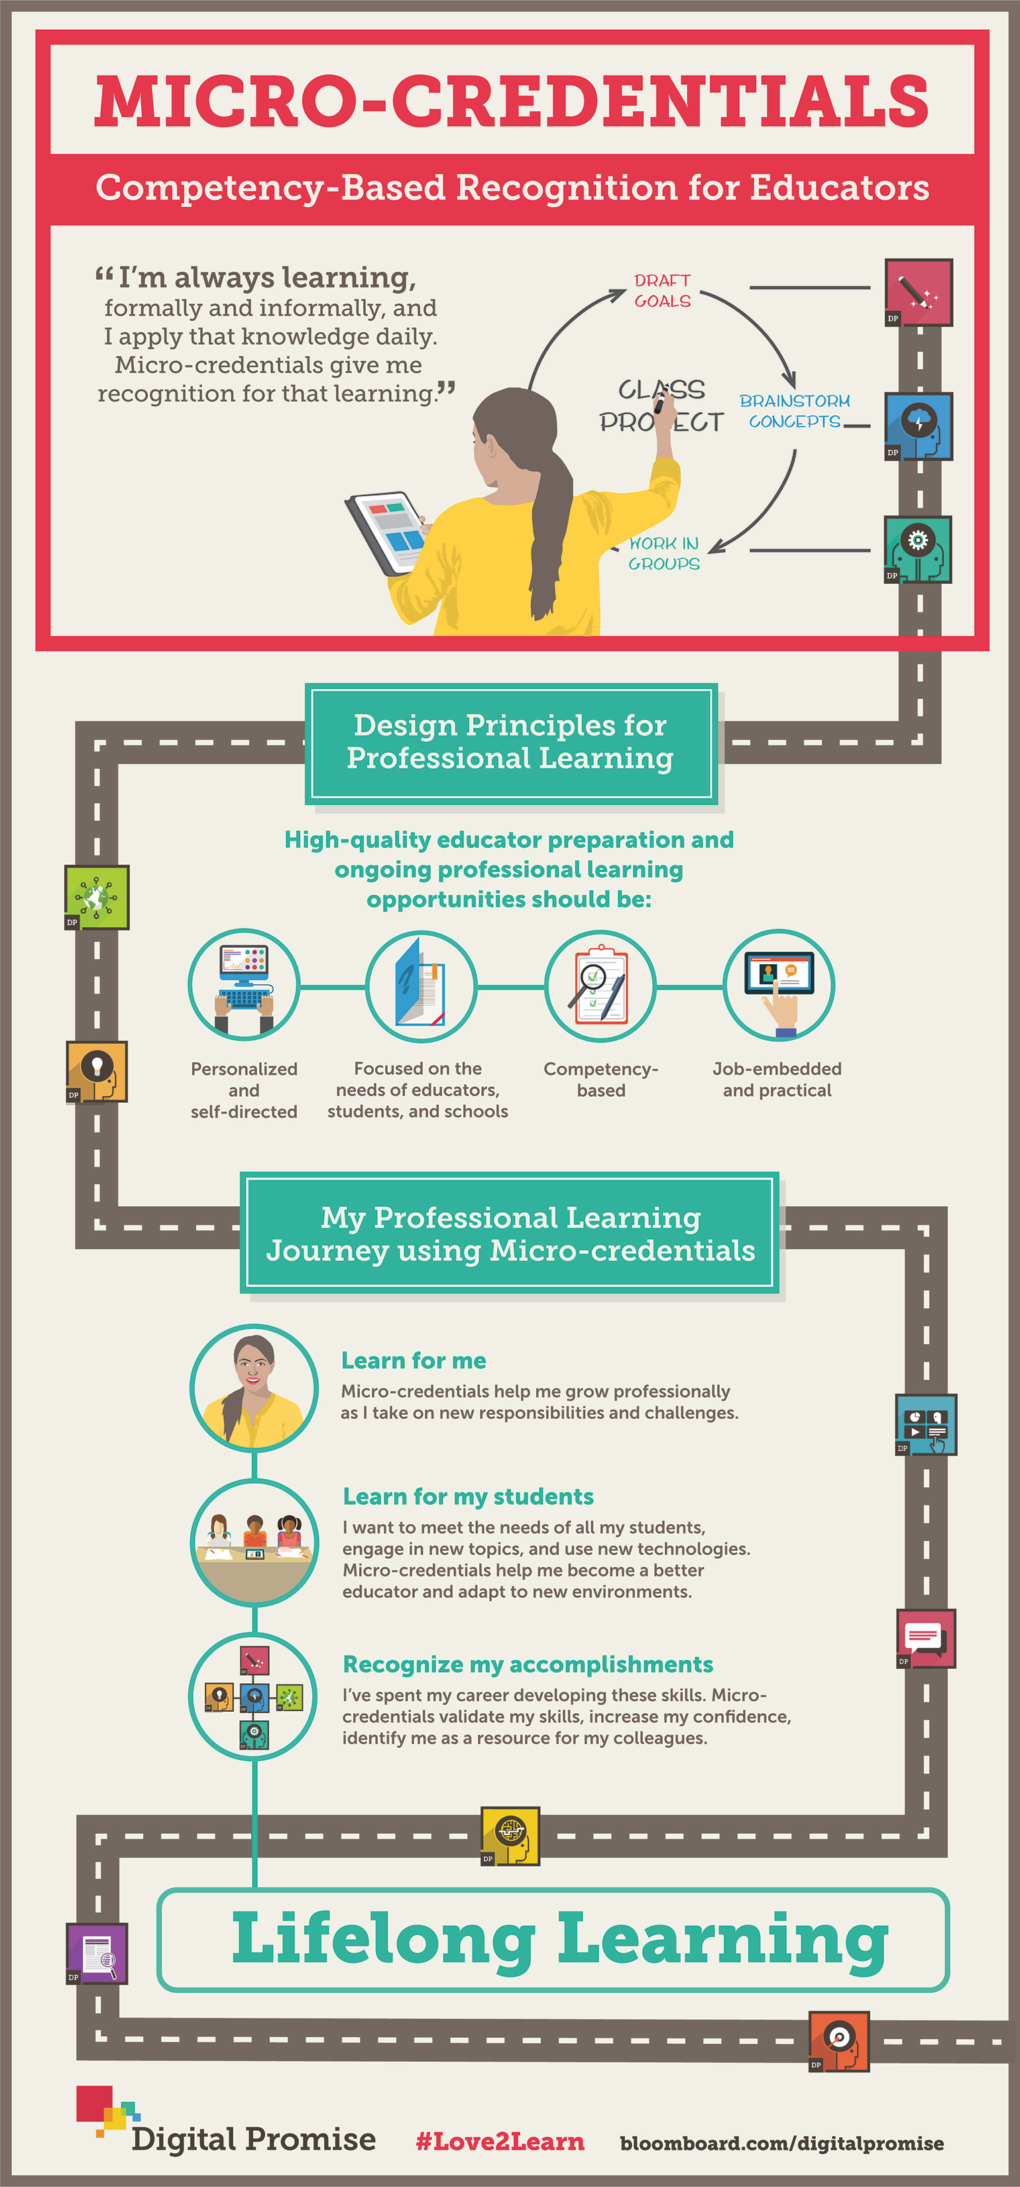 Digital Promise designers created an infographic to explain the benefits they see in micro-credentials.